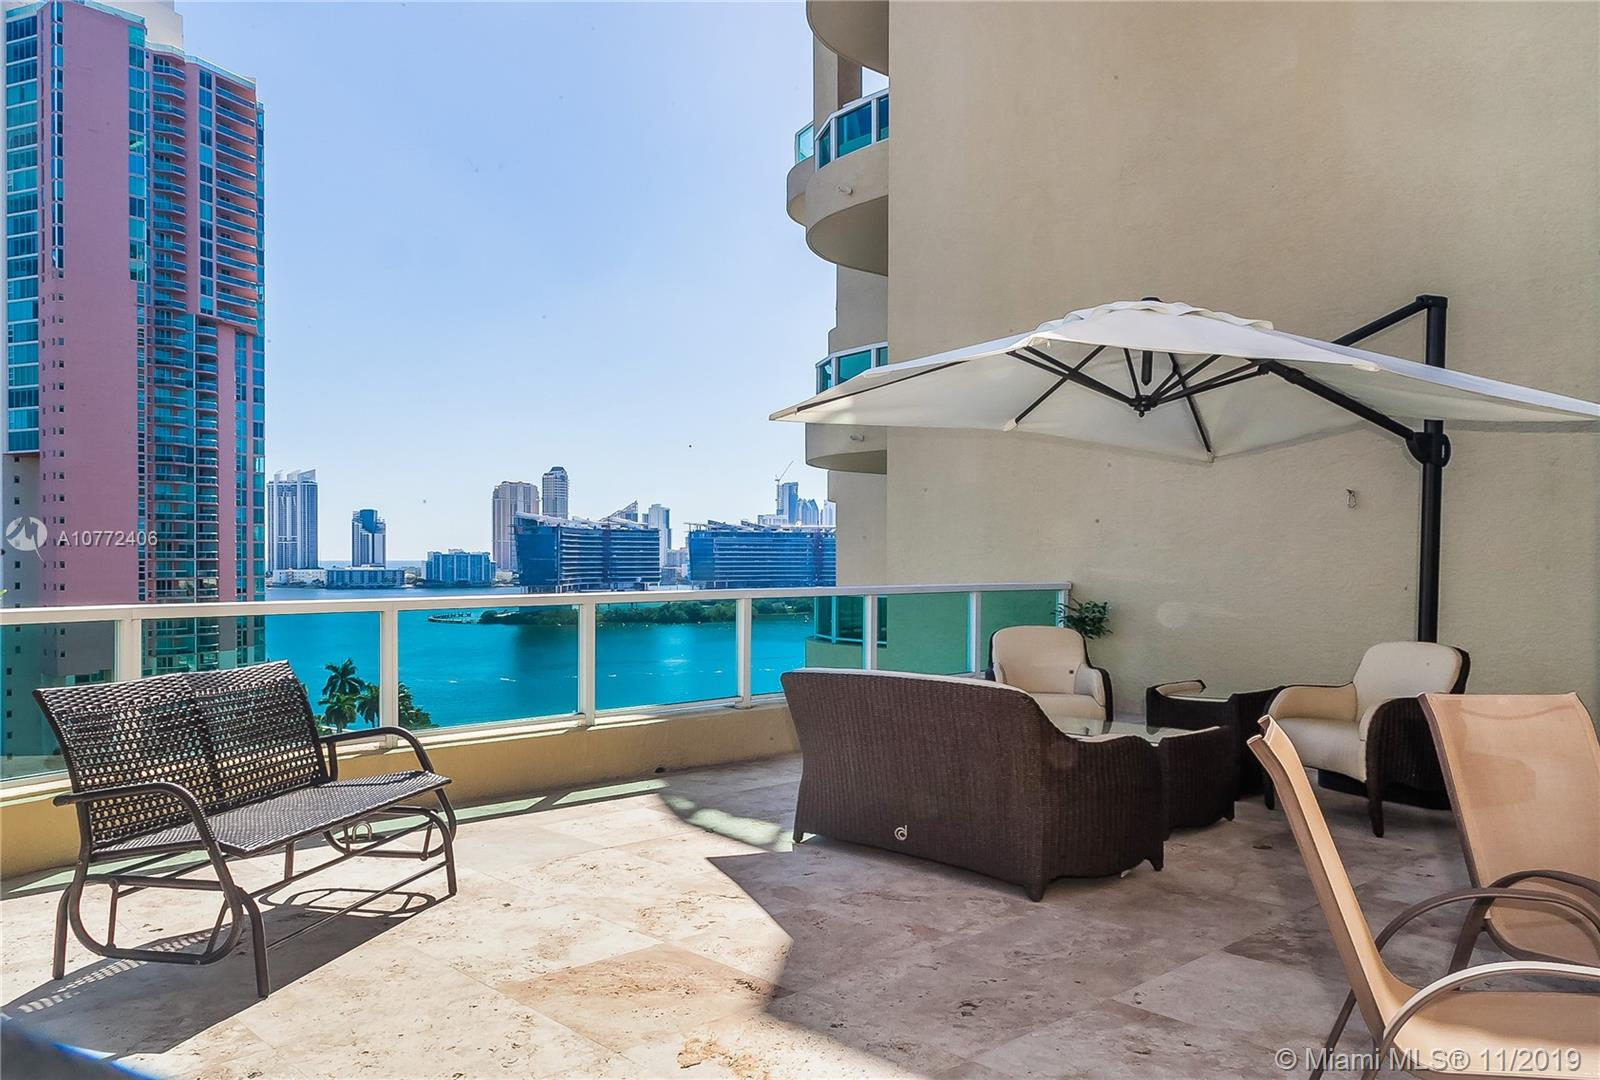 Exquisite and completely remodeled two level Penthouse located in the heart of Aventura. Enjoy breathtaking panoramic views of the ocean, intracoastal, marina, and the Turnberry Golf from the private deck. Sophisticated yet modern stairs connect the first floor to three exquisite bedrooms located on the second floor. Each floor has its own brand new AC. The lower level includes a laundry room, powder room and a very convenient den or office. Fabulous and spacious living and family rooms. Volume ceilings, exquisite finishings, spacious, open, bright, and full of natural light. This masterpiece includes 2 parking spaces and a storage space, which are rarely available. ACs are brand new. Enjoy the most luxurious spa in the heart of Aventura. Close to the Aventura Mall, Sunny Isles Beach,